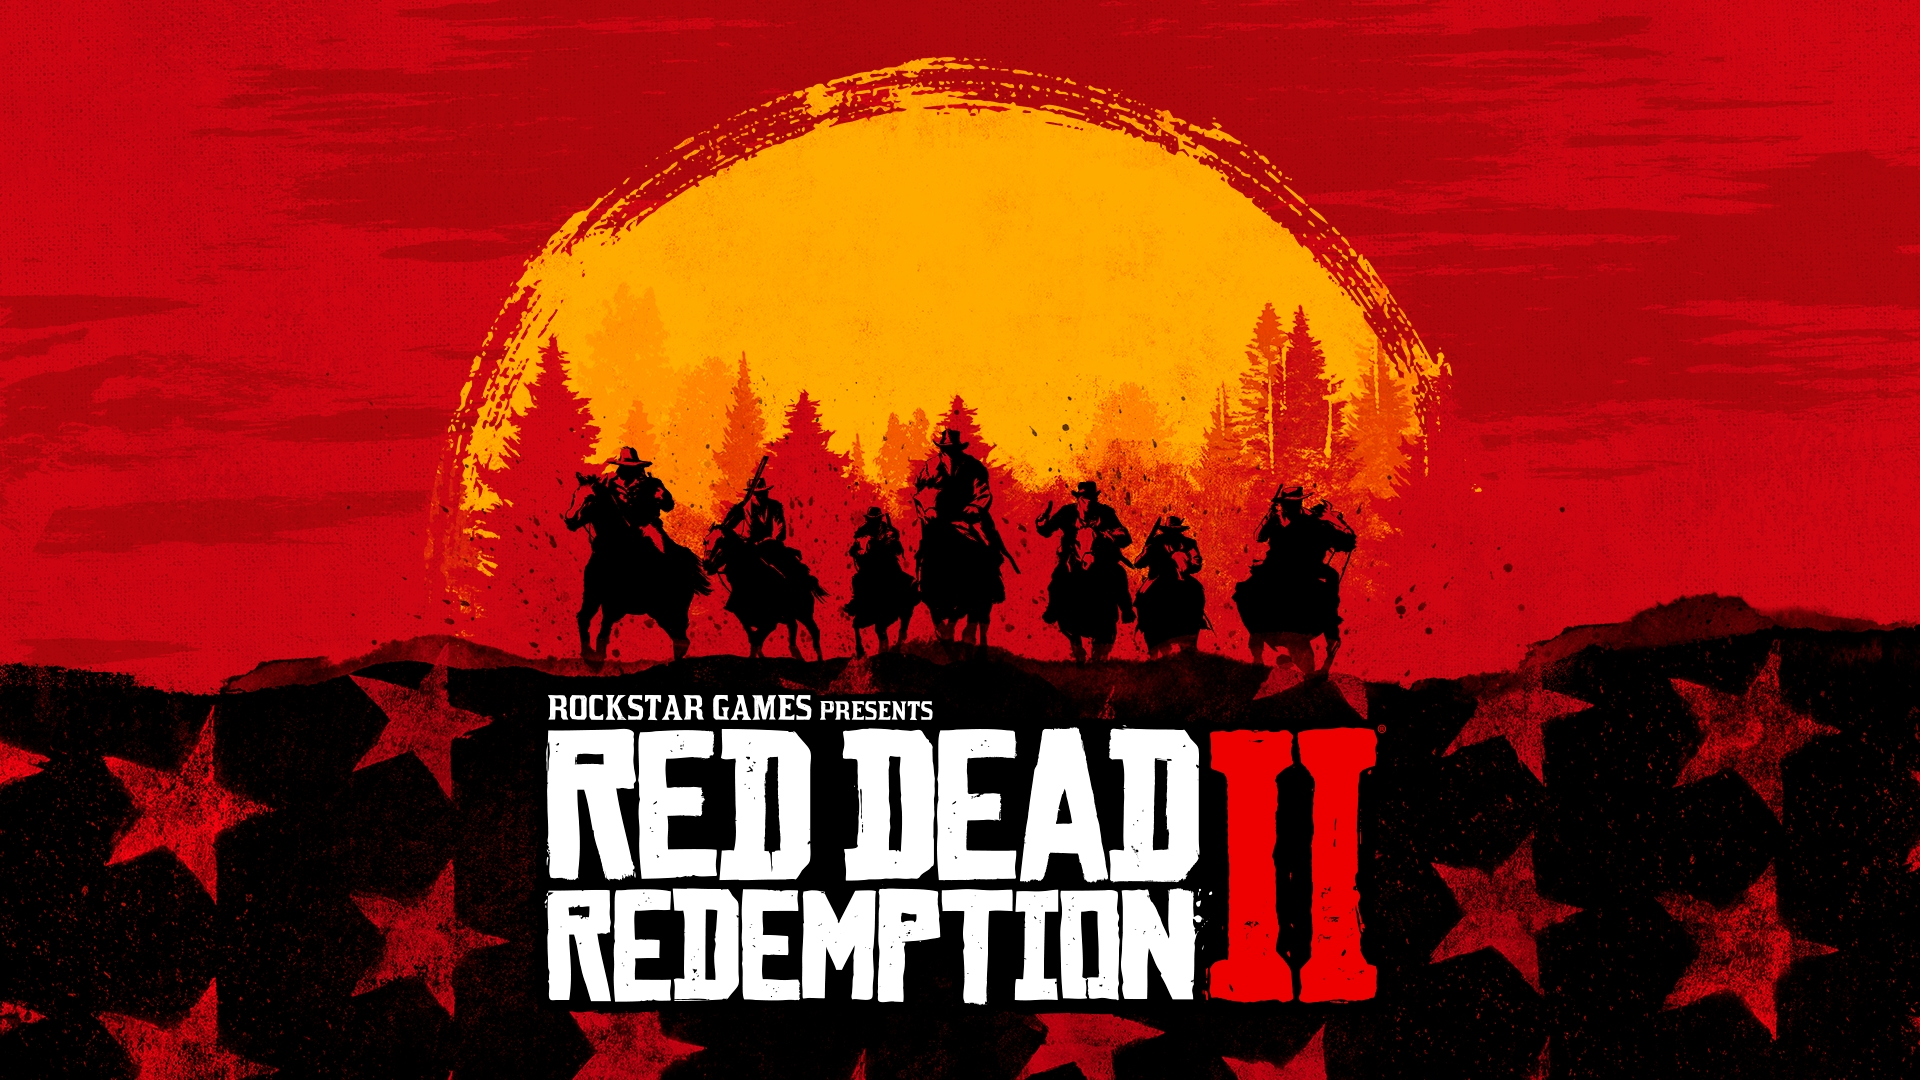 Rockstar Games 3 Way Switch 2 Black 1 Red Building On The Evocative Score Of Original Dead Redemption Soundtrack And Is A Powerful Emotional Journey